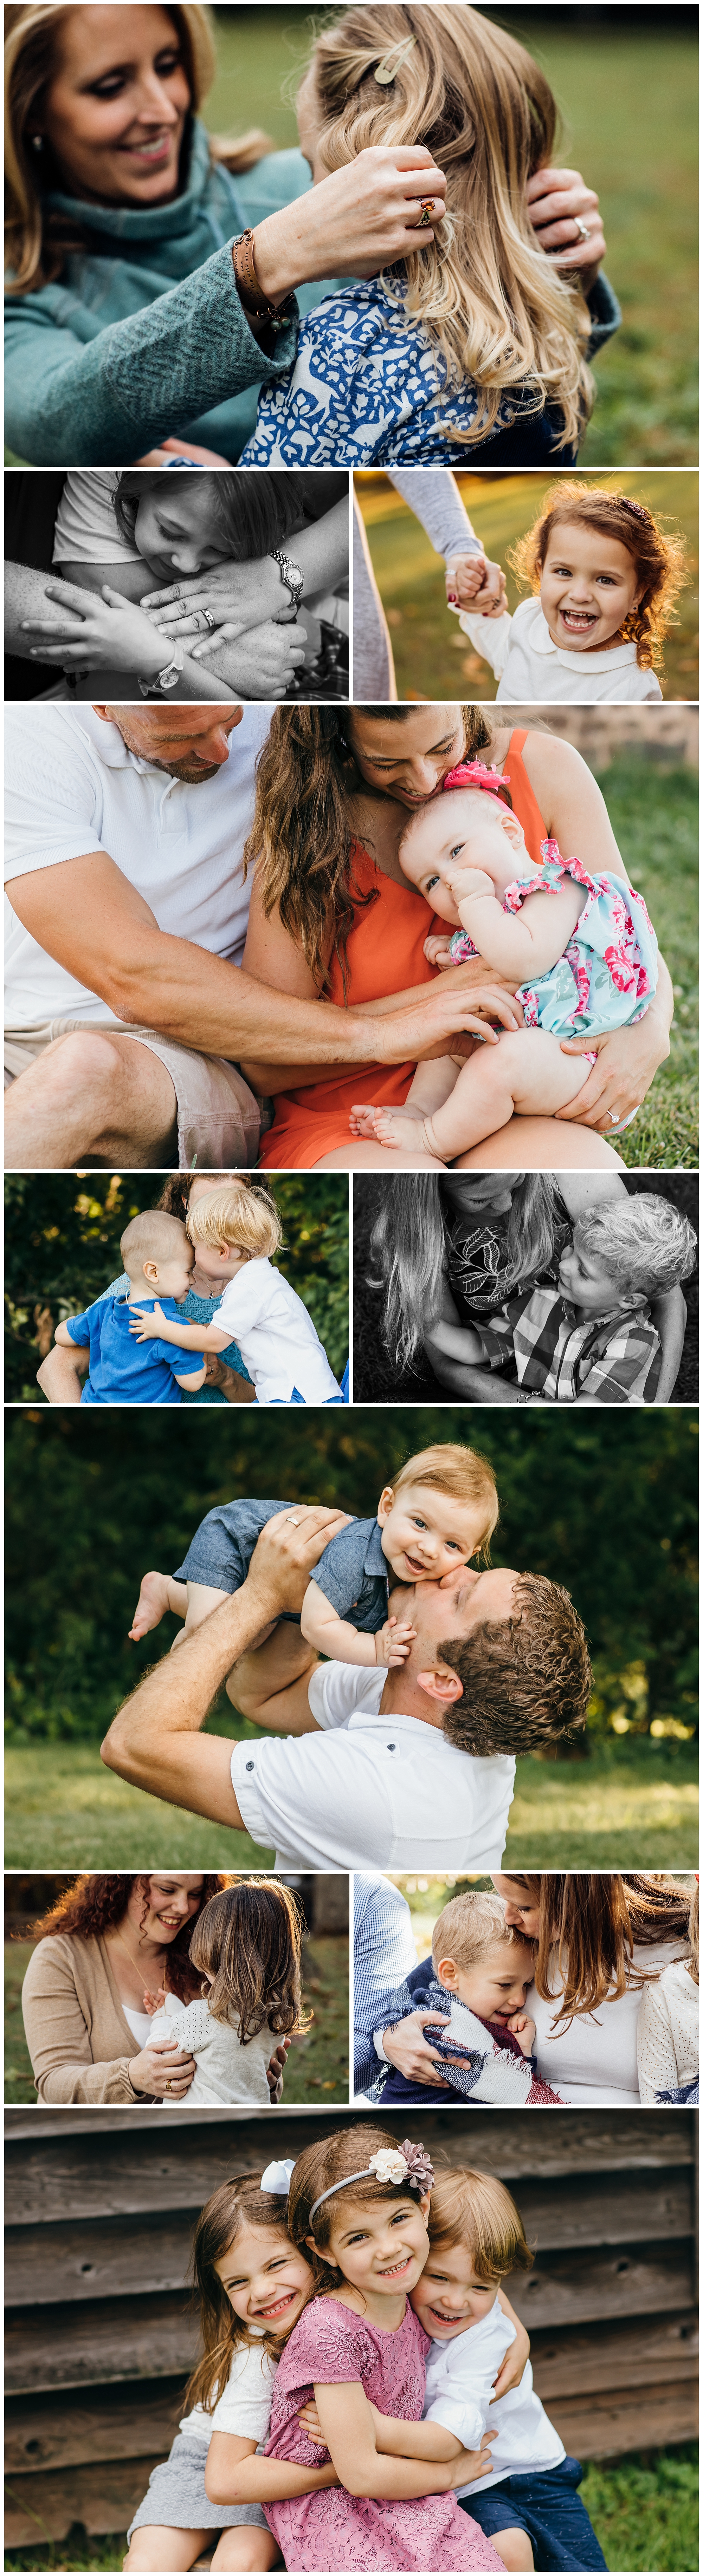 Best images from Child Portrait Photographer